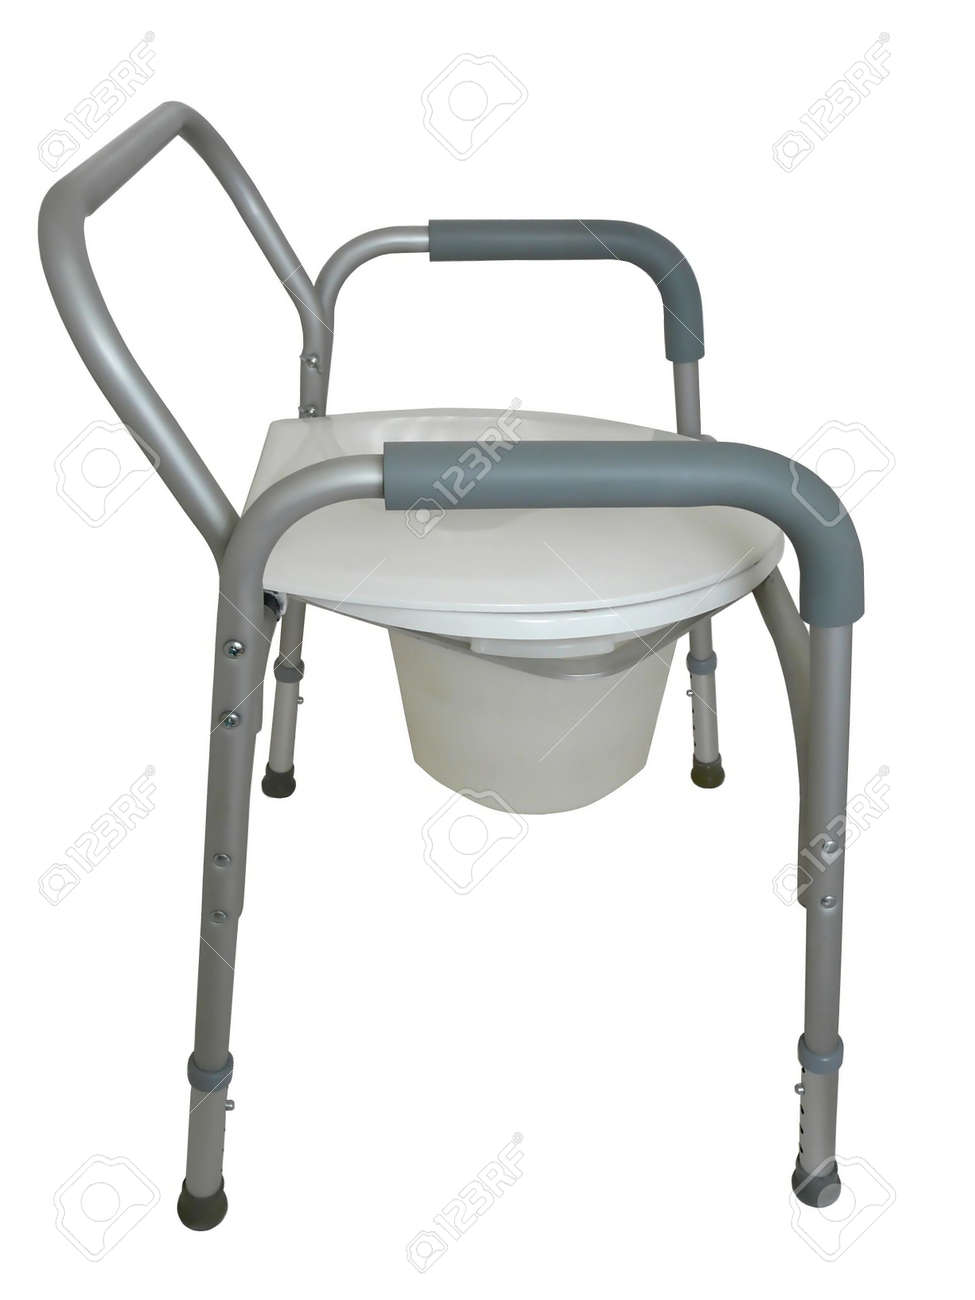 Bedside Commode Chair Bedside Commode To Be Used As A Raised Toilet Seat Over A Traditional